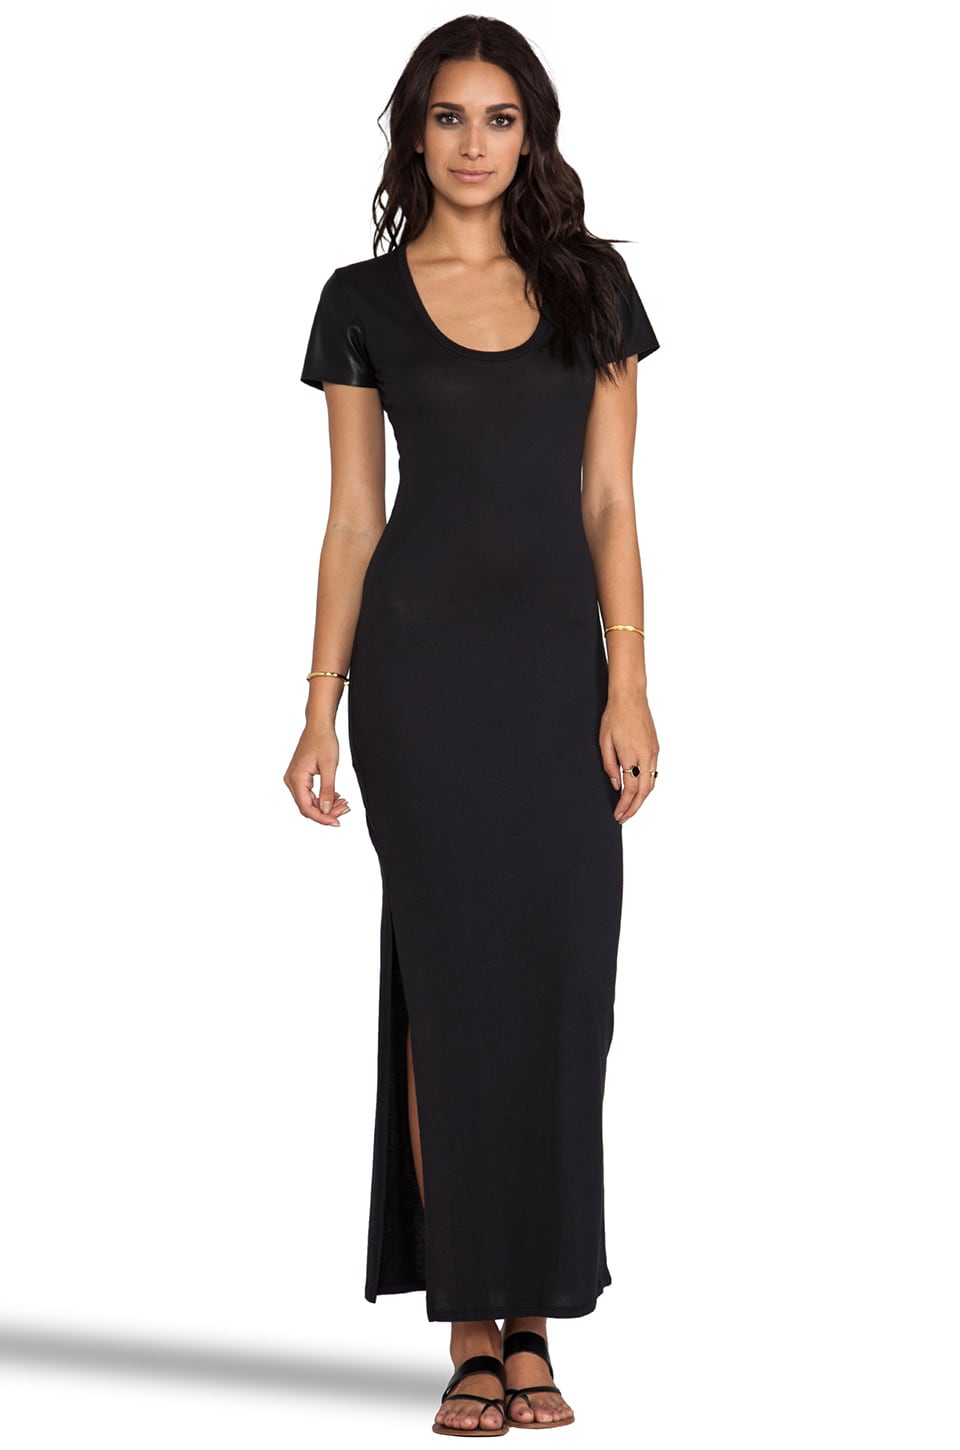 Bobi Jersey Maxi Dress with Leather in Black